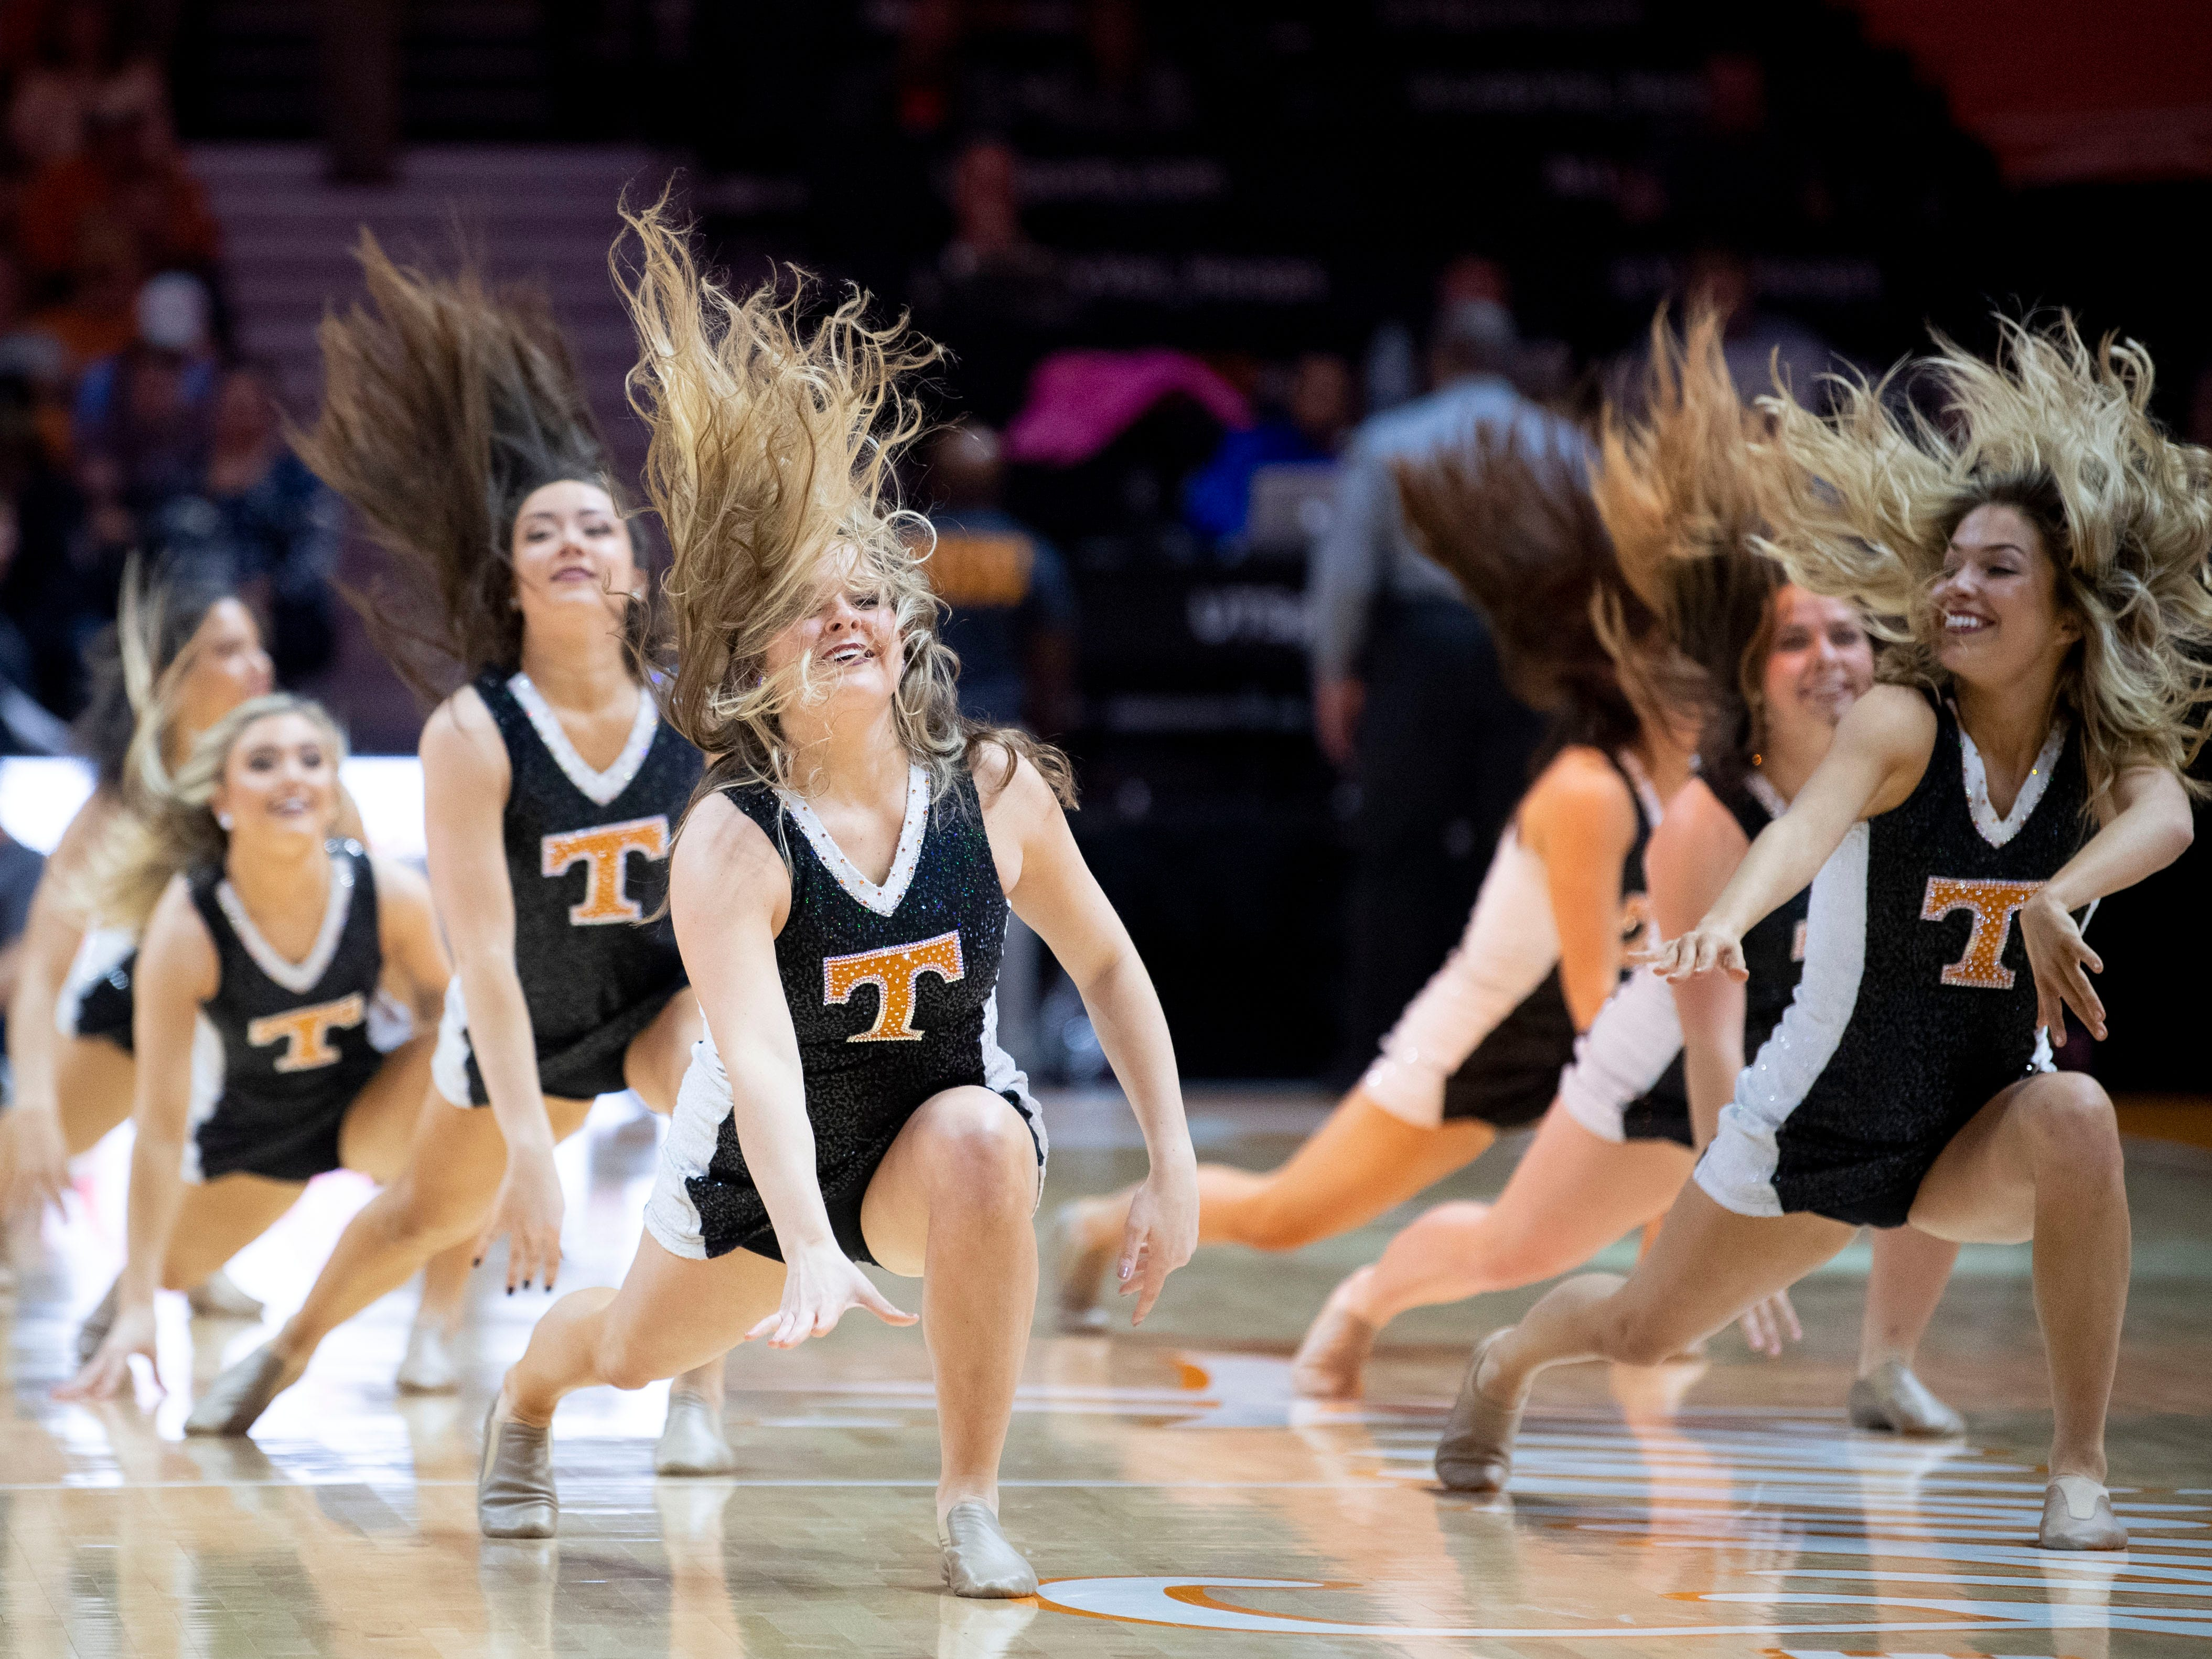 The Tennessee dance team performs between quarters at the Lady Vols and Auburn game on Thursday, February 14, 2019.